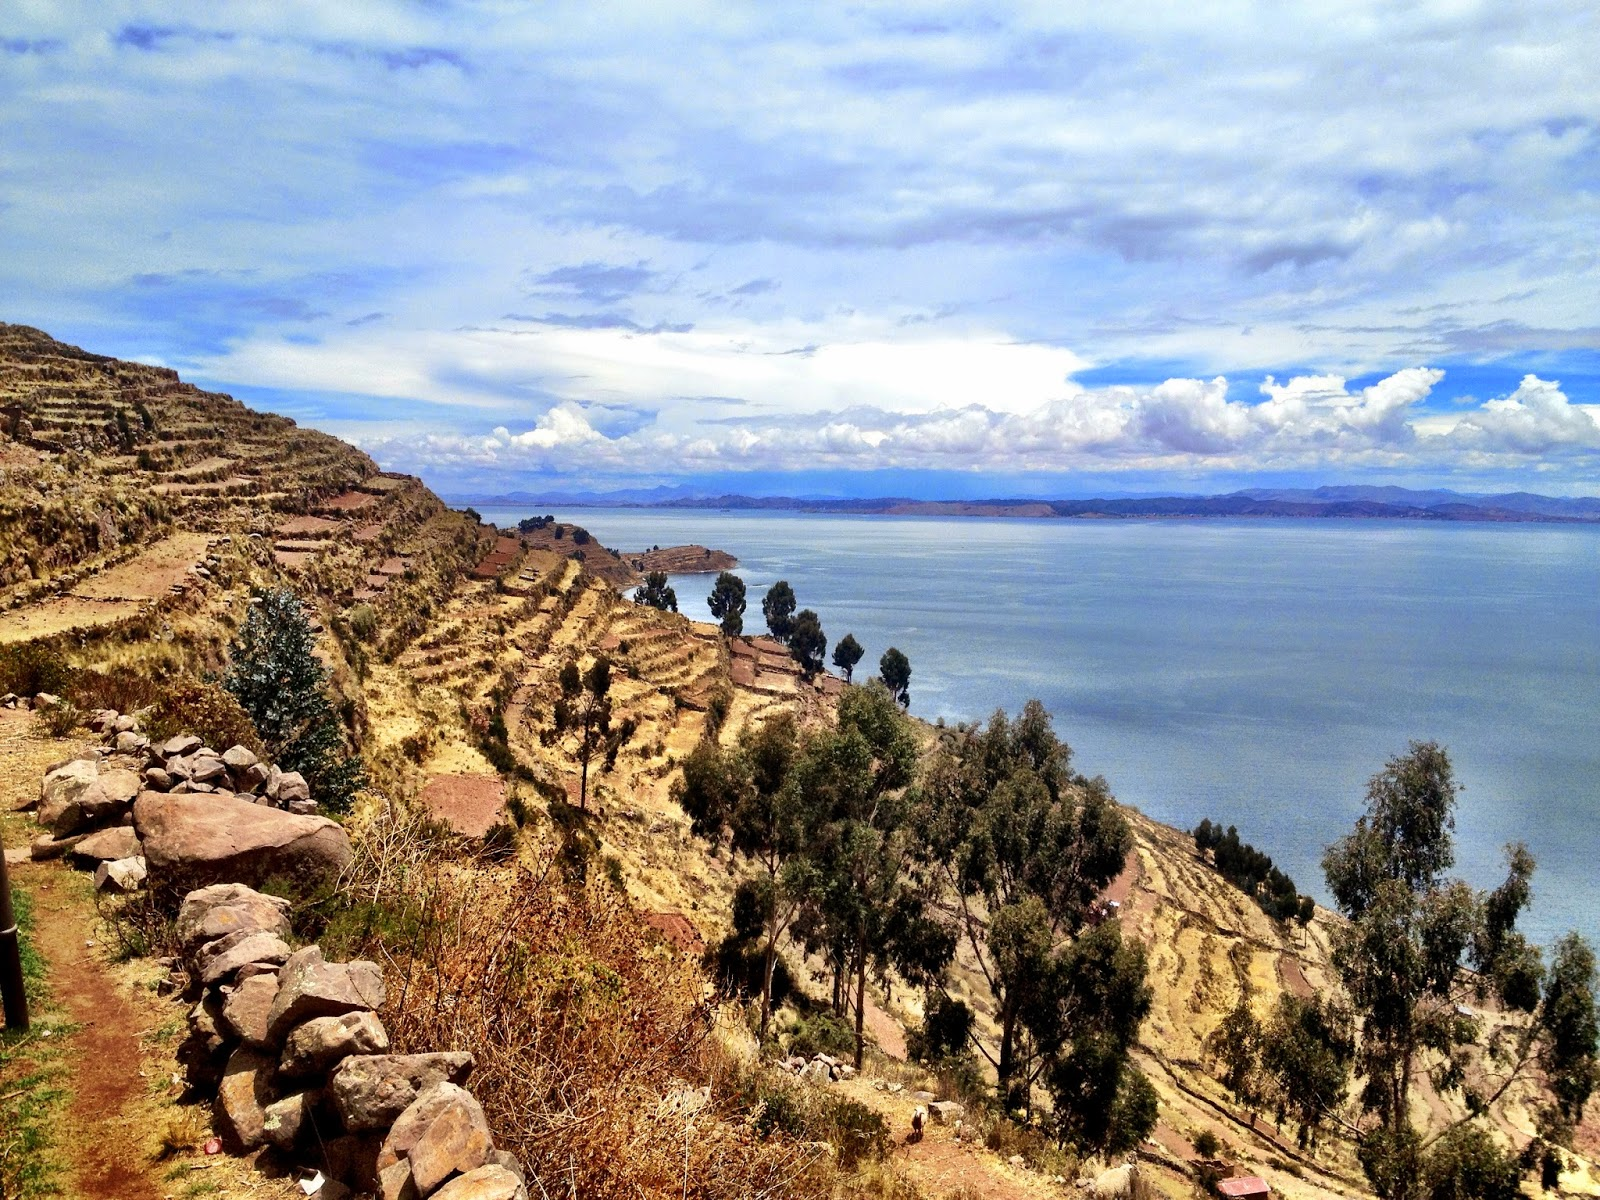 Farming terraces down to the sea - Taquile Island